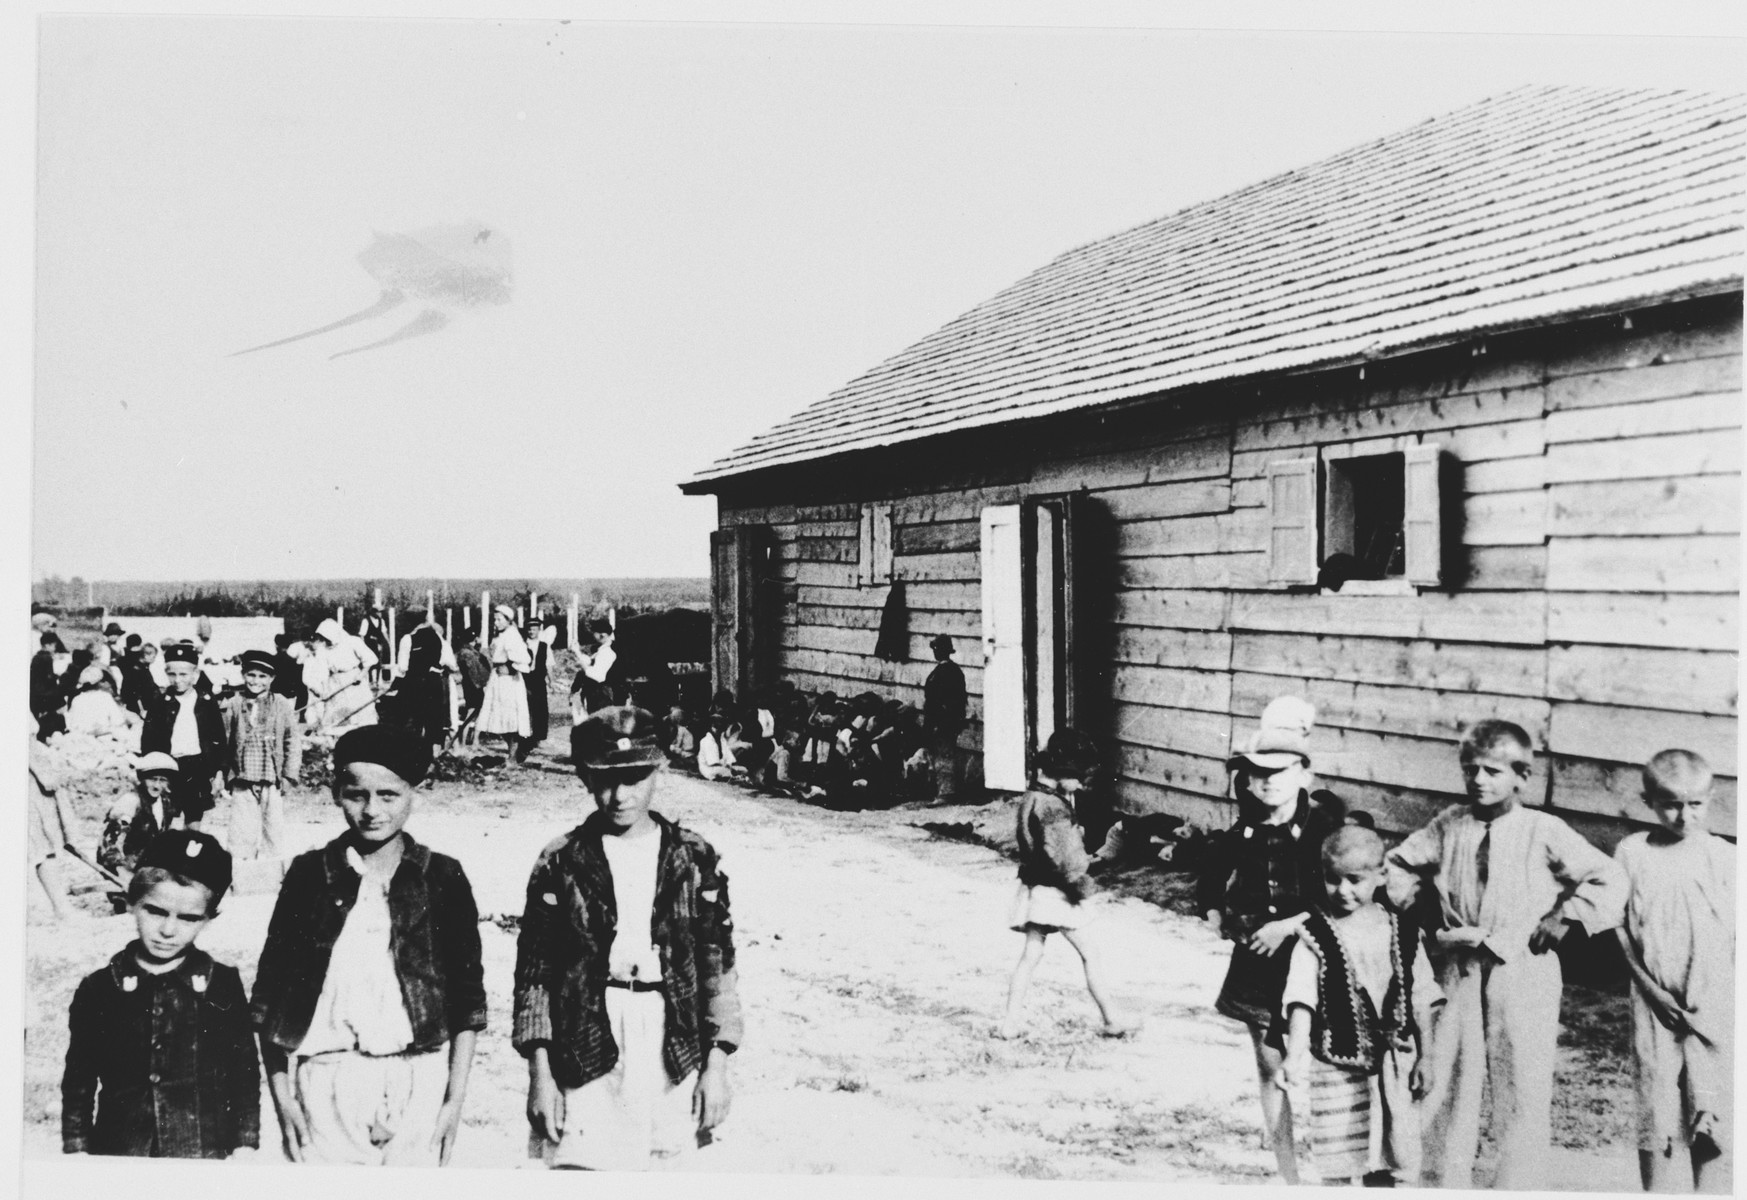 Children, some of whom are dressed in Ustasa uniforms, stand outside a barracks in the Gornja Rijeka concentration camp.